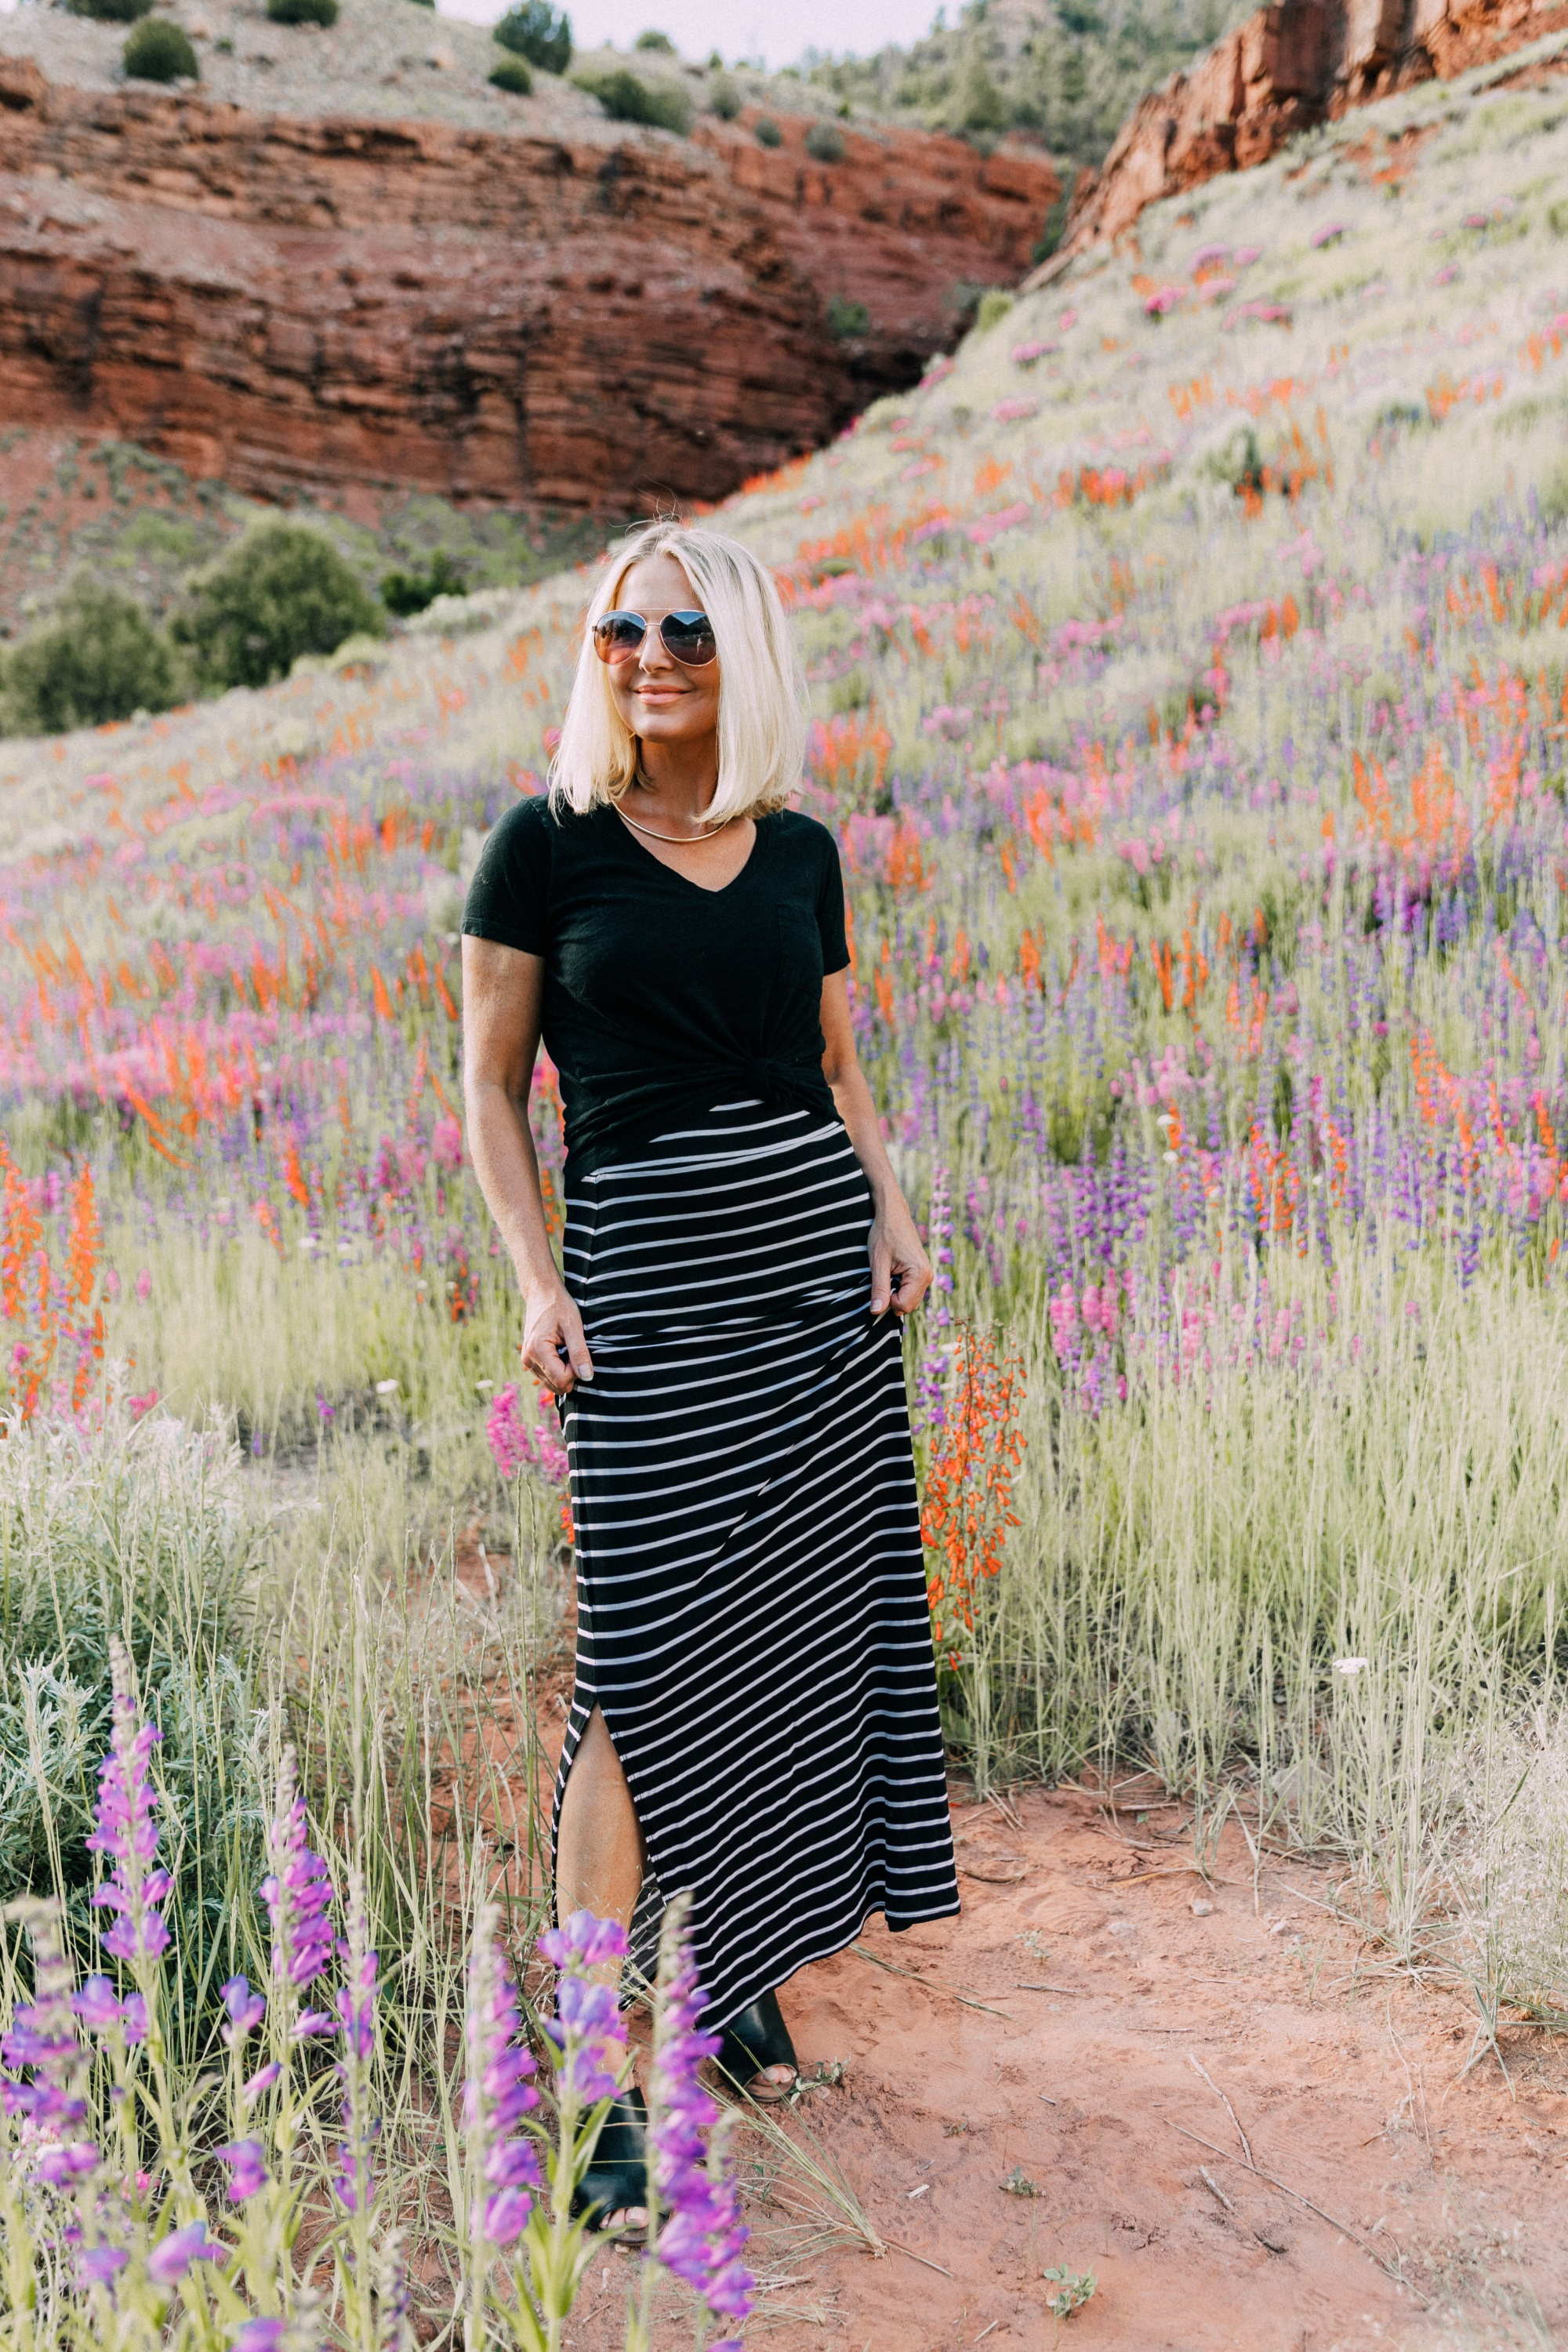 Ways To Wear Stripes, Fashion blogger Erin Busbee wearing a striped maxi skirt, black v-neck tee, and black peep toe mules from JCPenney in the wildflowers in Telluride, CO